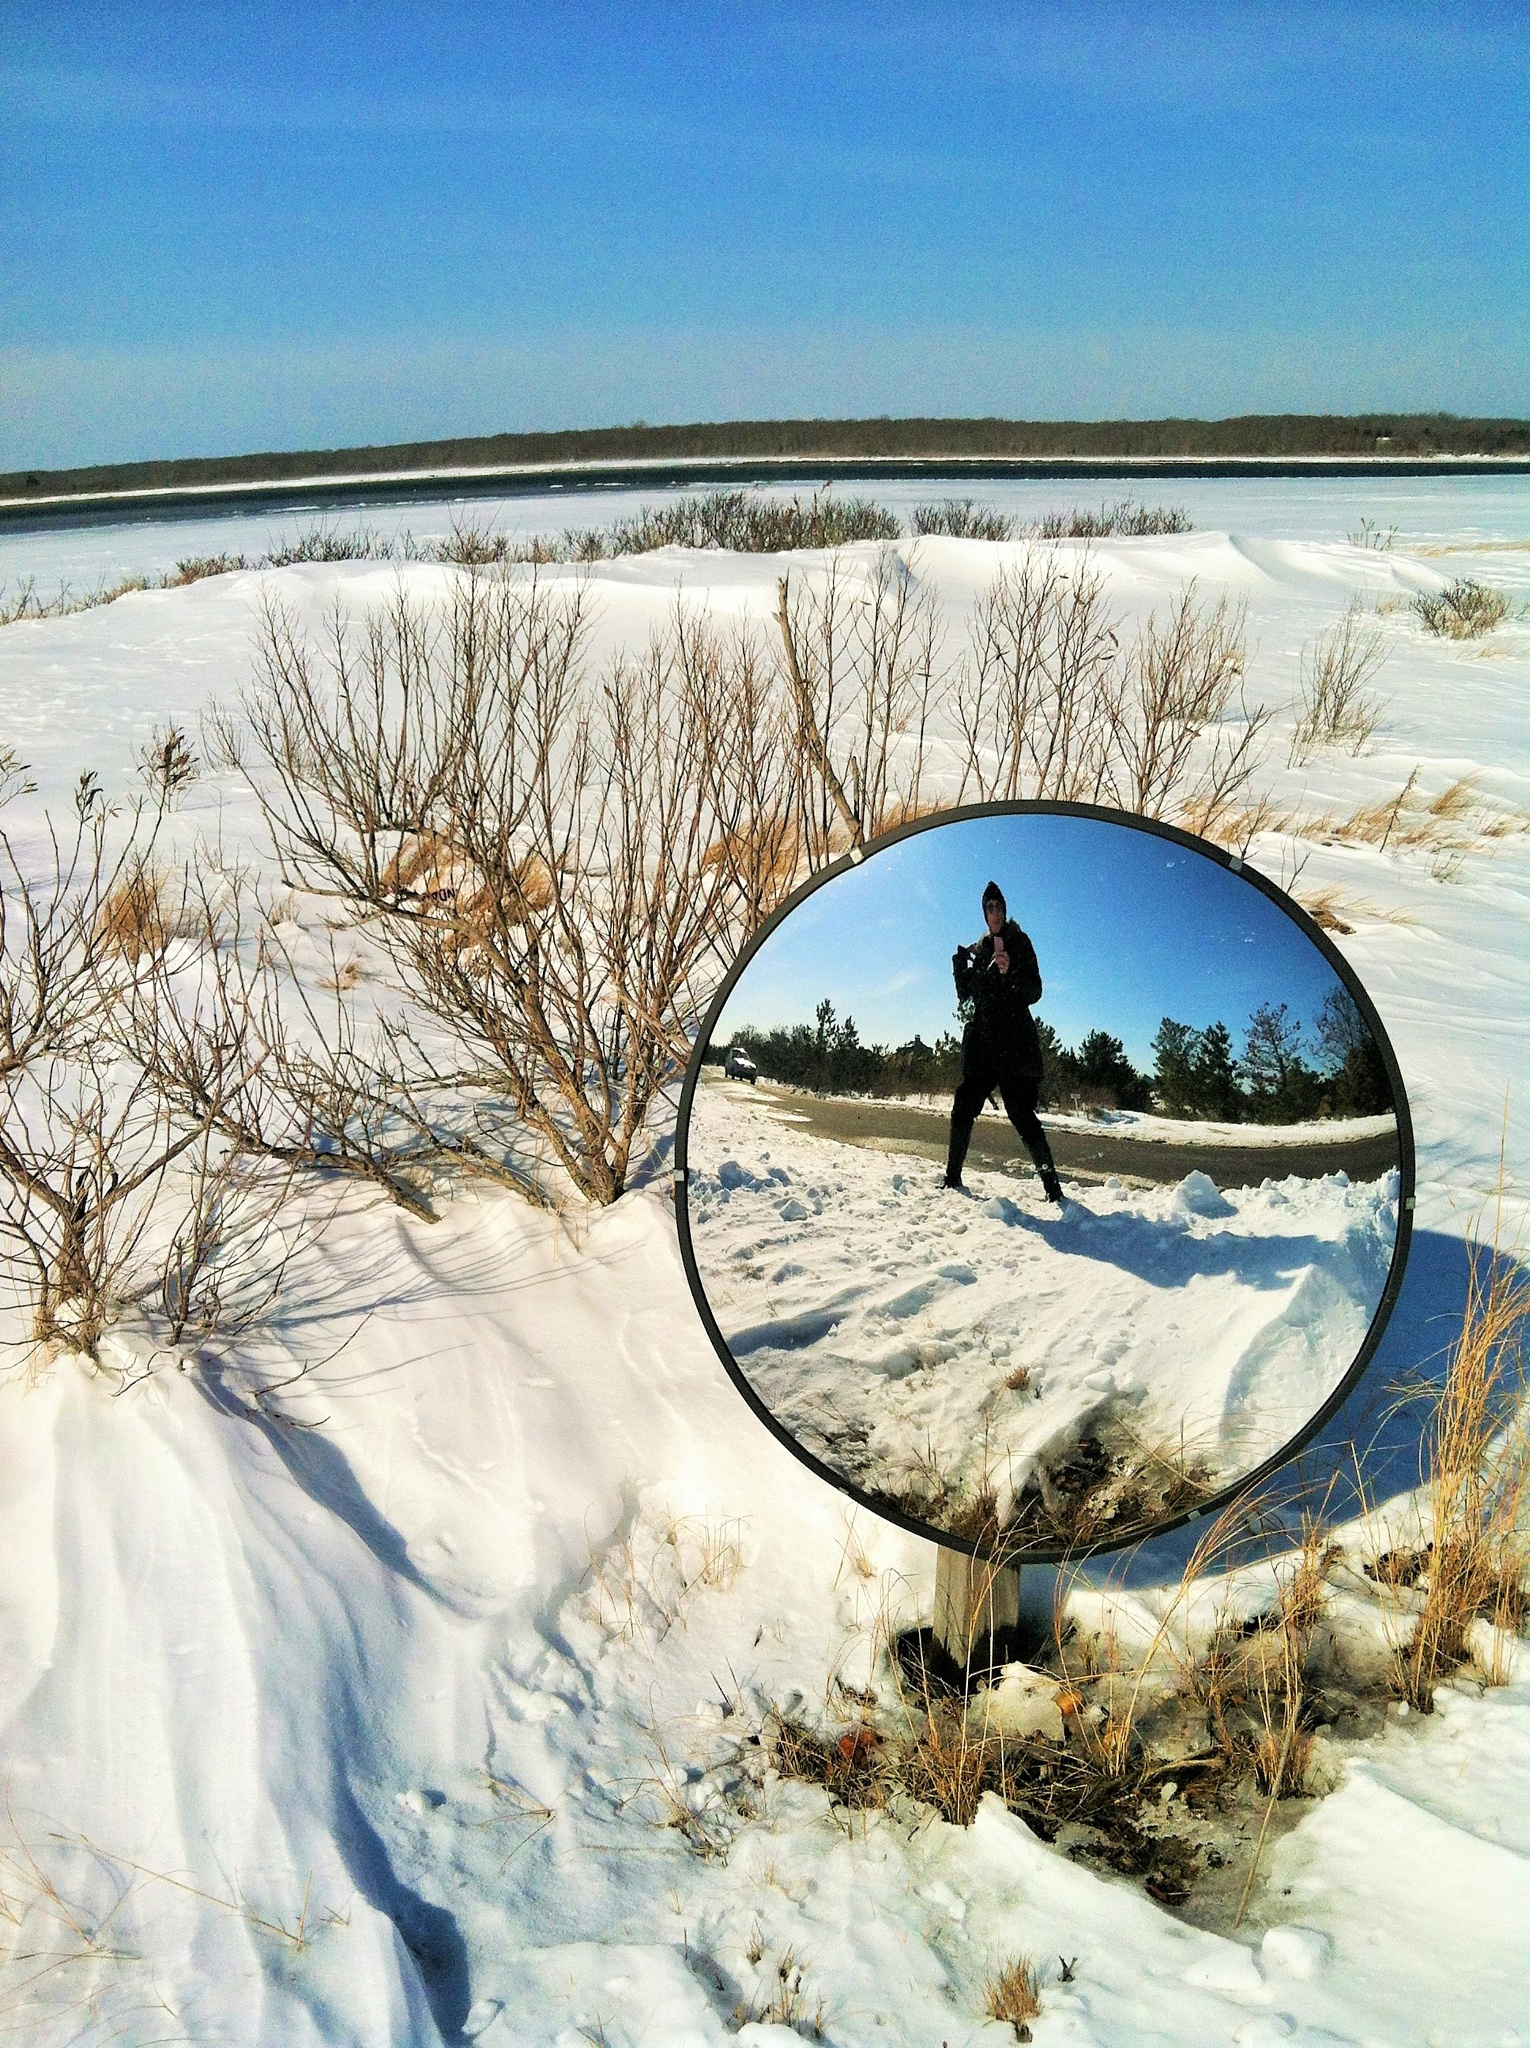 In the Mirrror by the Bay by Martha Sheehan